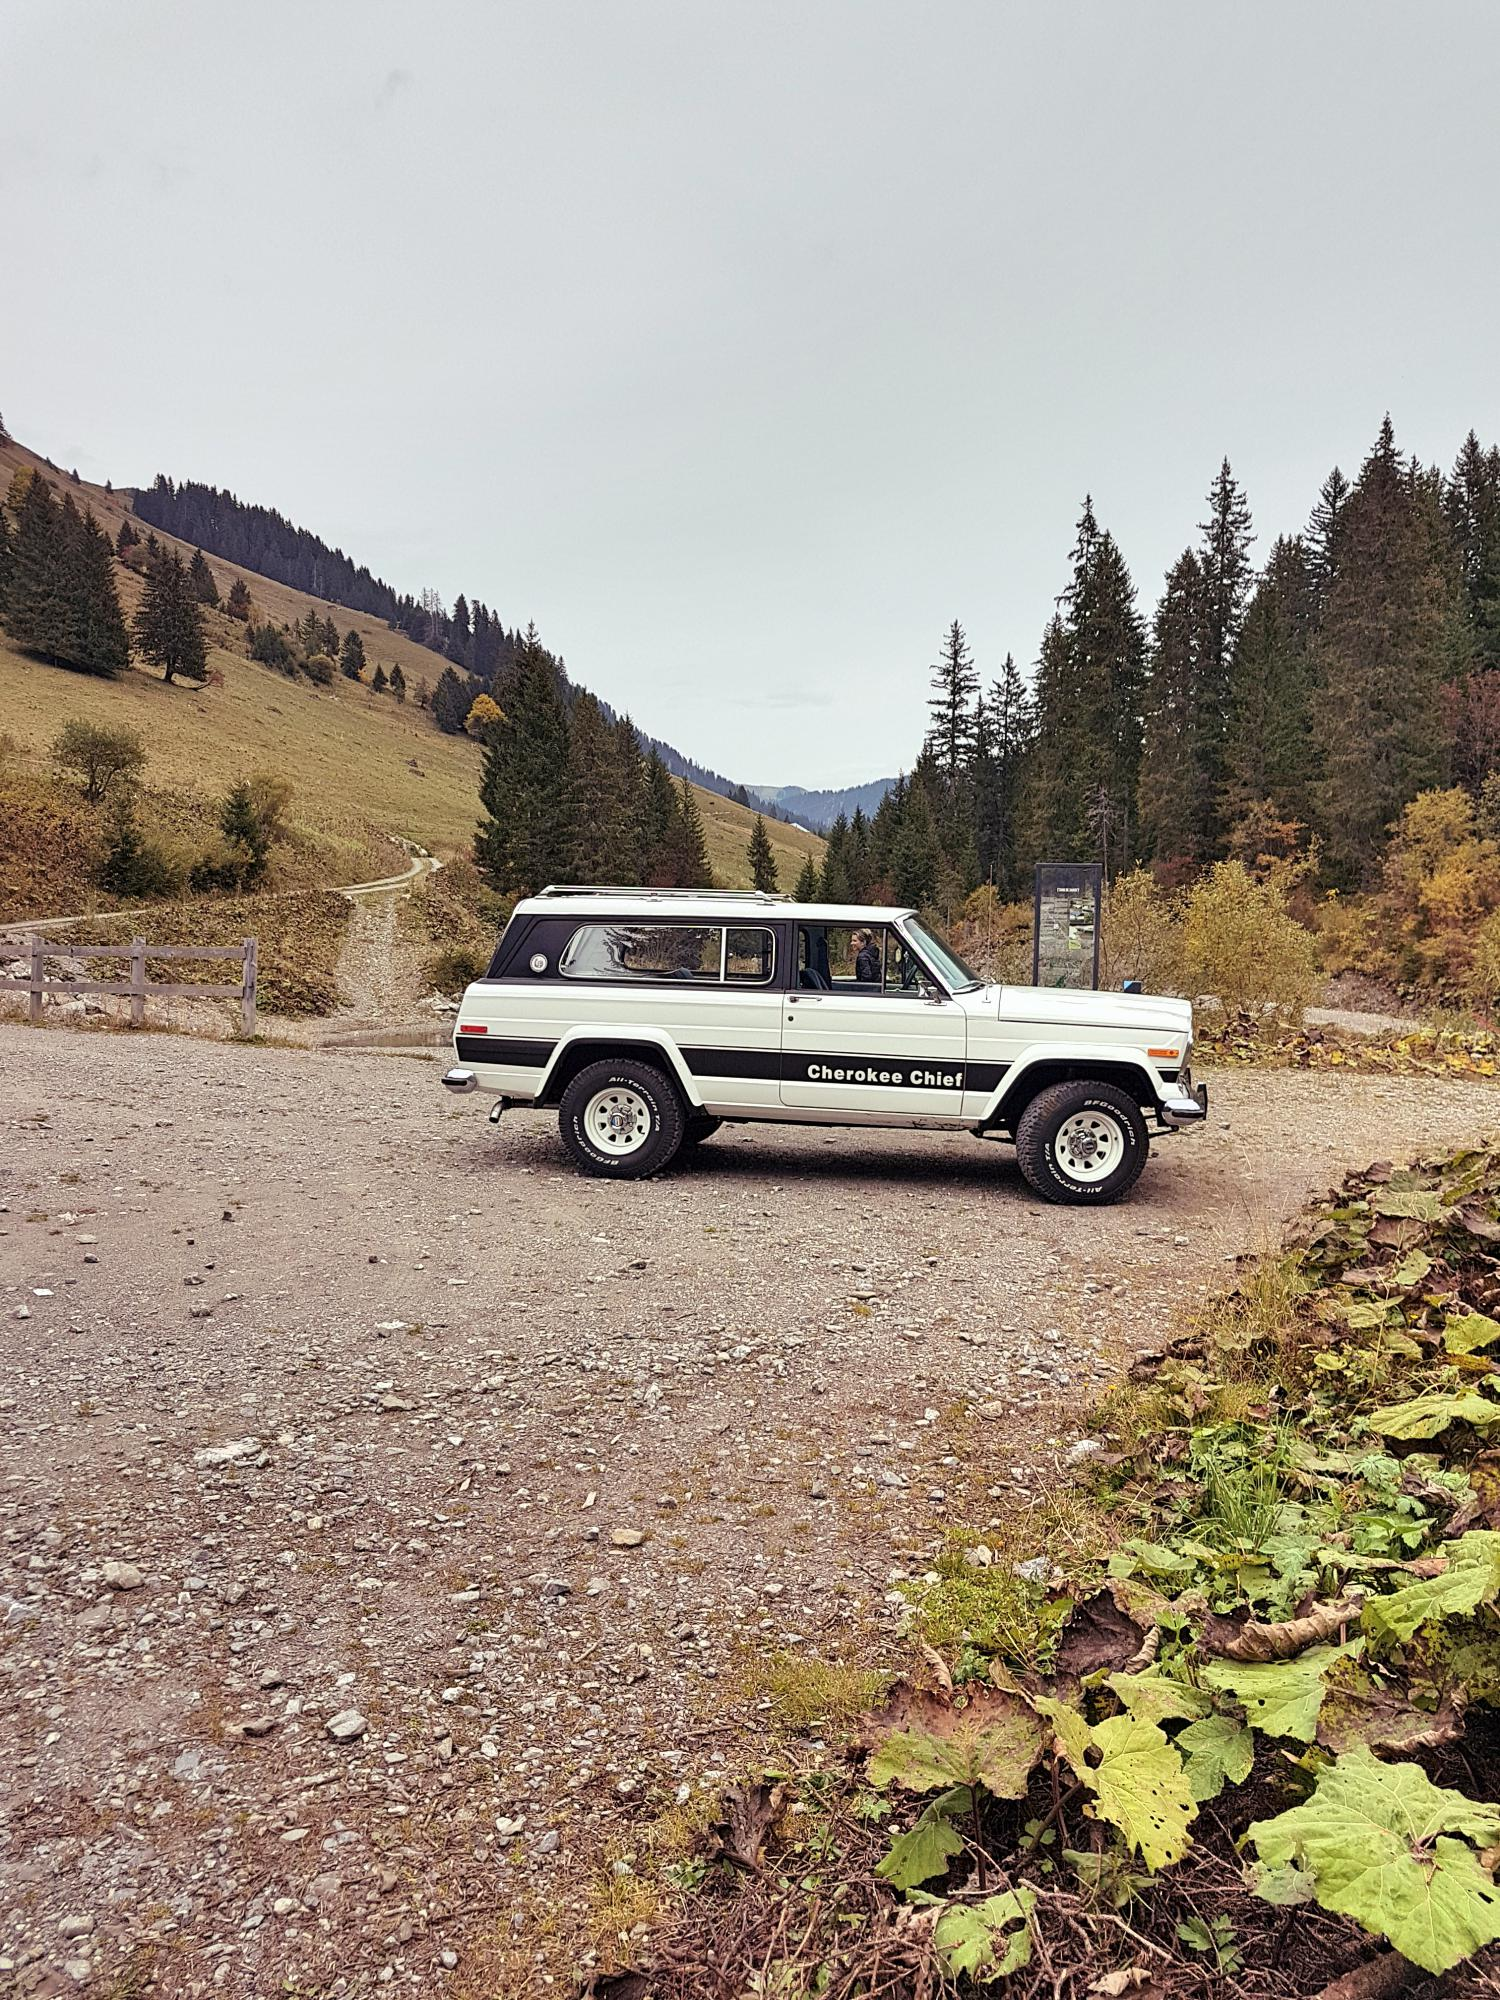 jeep-cherokee-chief-1978-shooting-morgins-switzerland-94.jpg